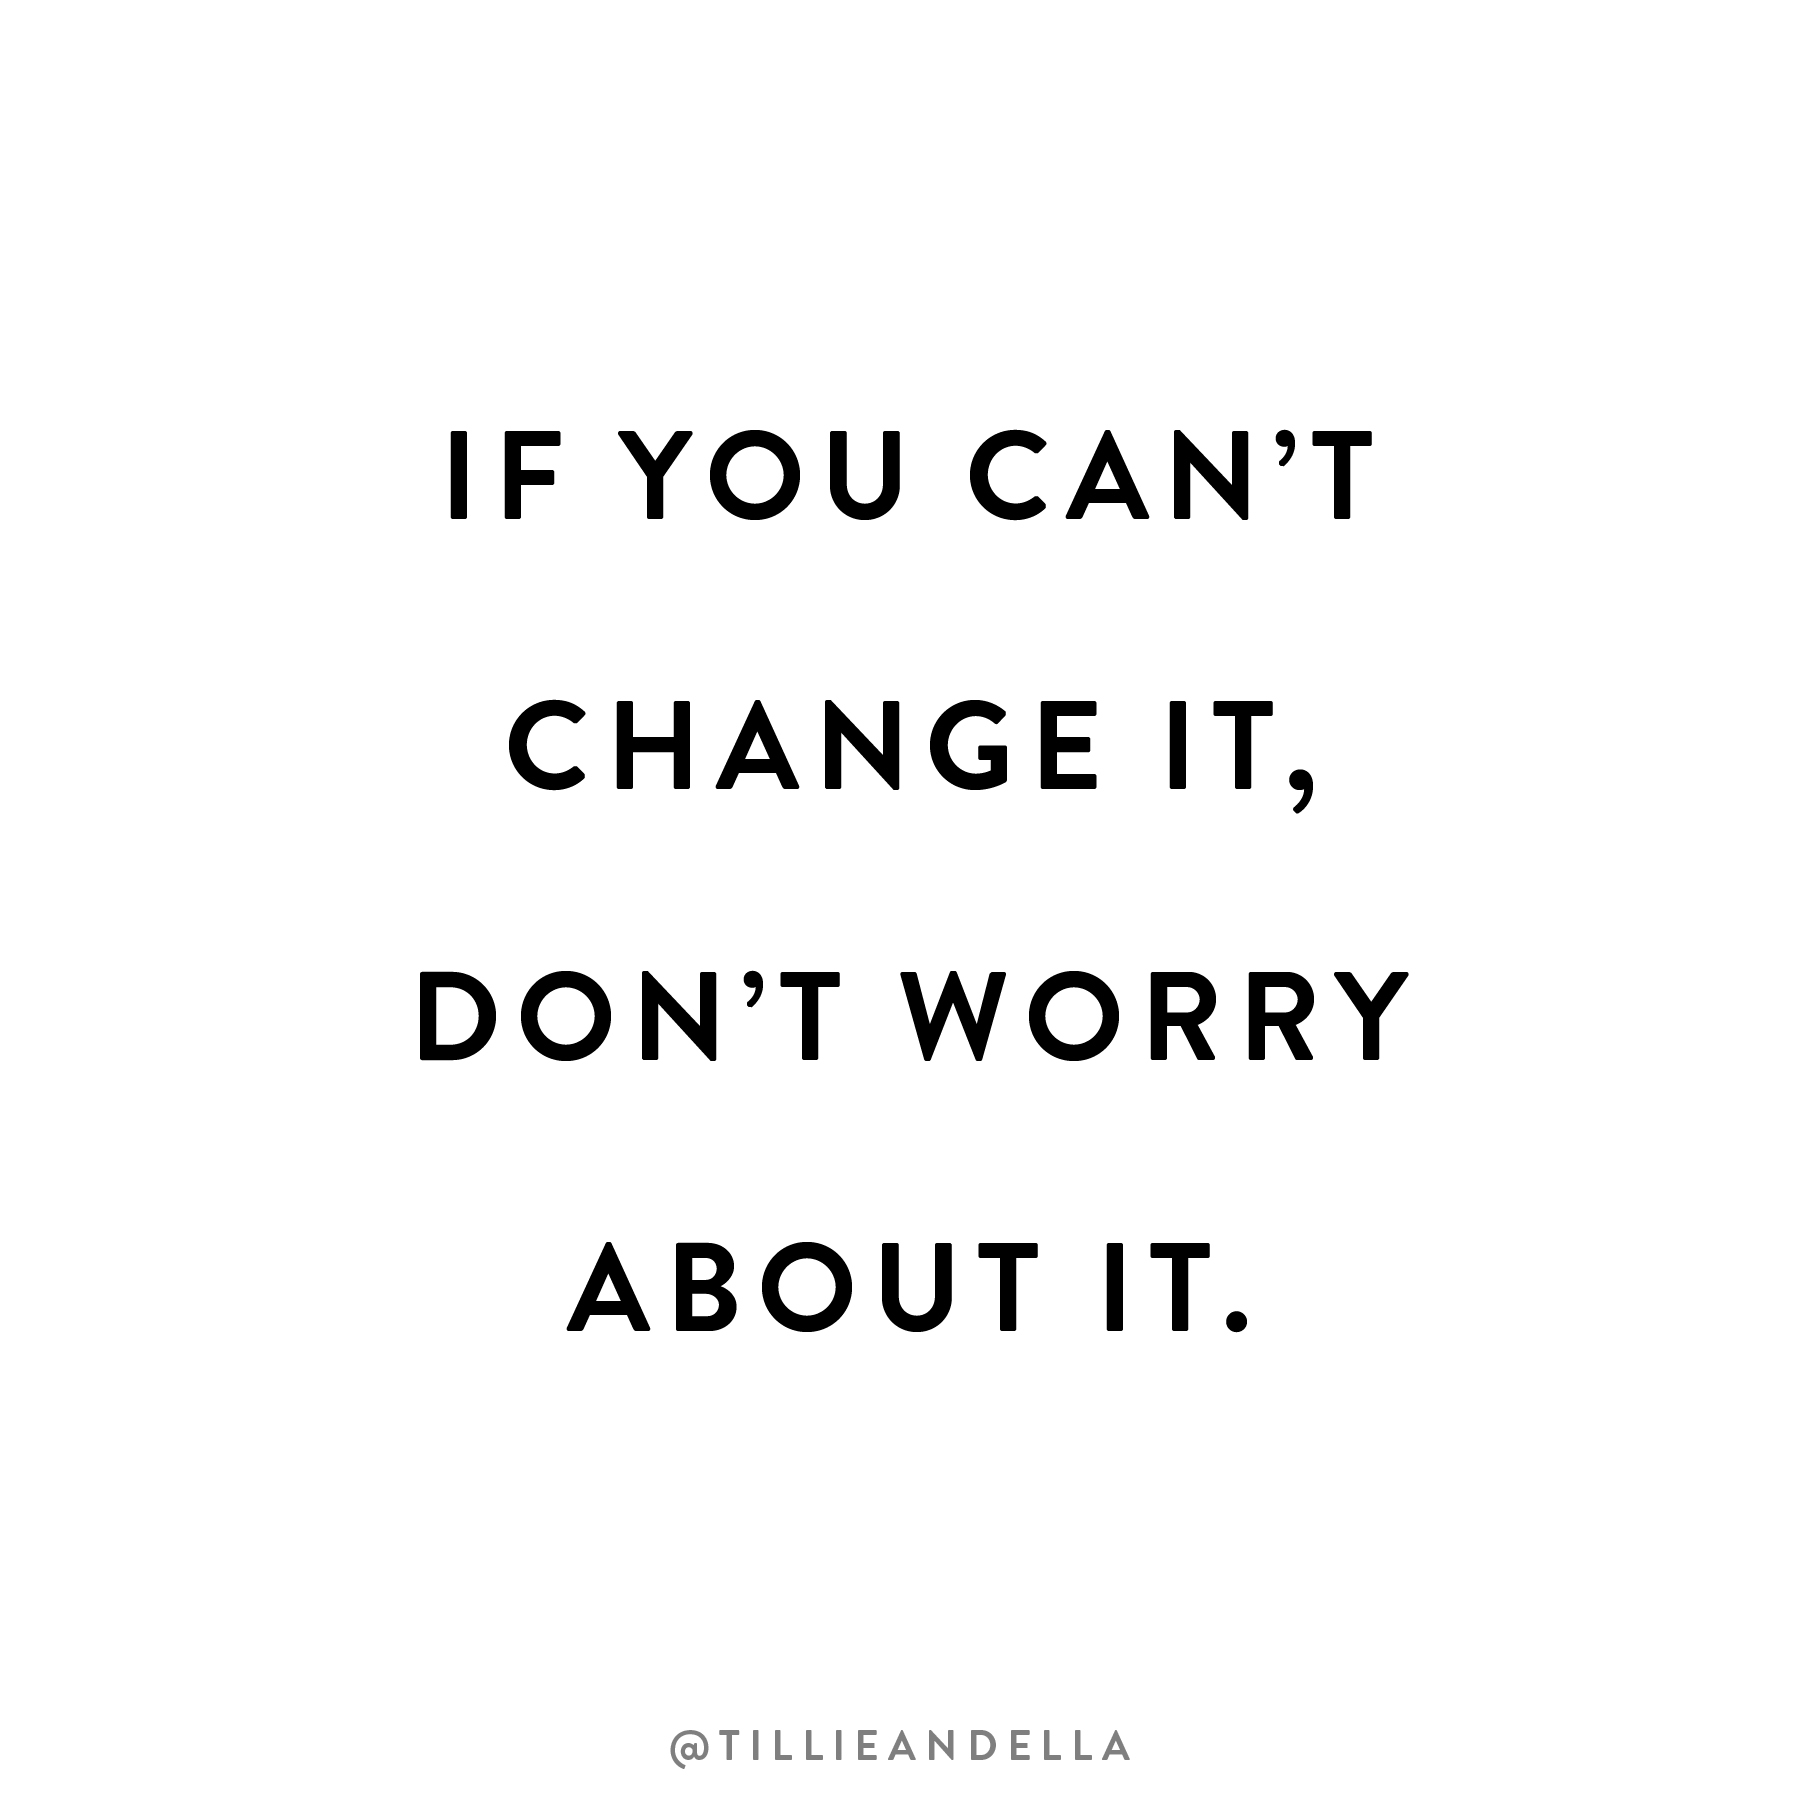 If you can't change it don't worry about it